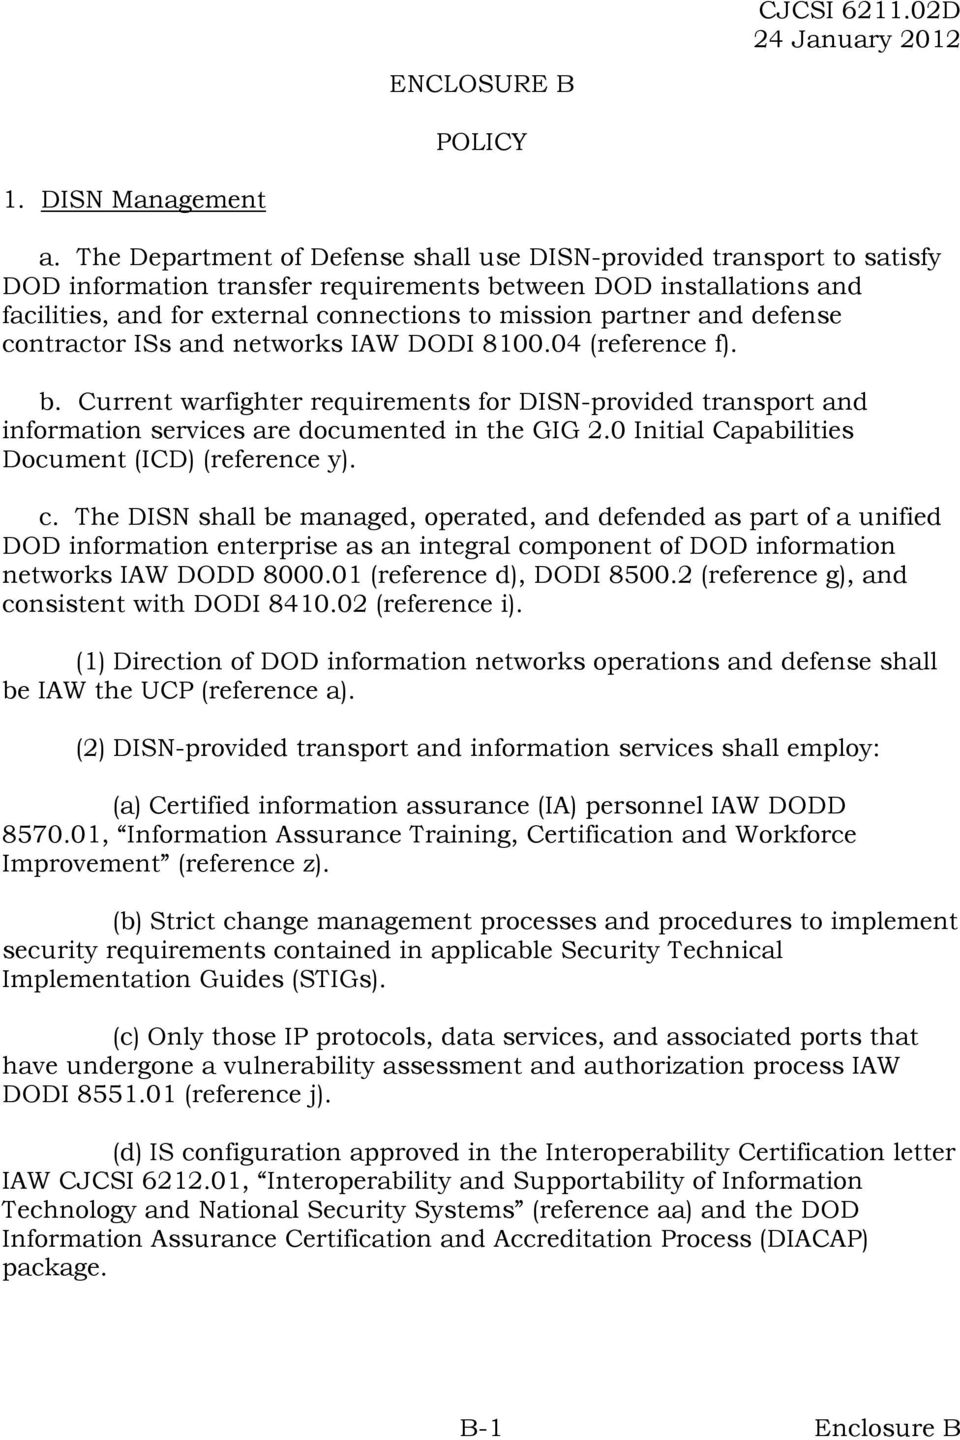 and defense contractor ISs and networks IAW DODI 8100.04 (reference f). b. Current warfighter requirements for DISN-provided transport and information services are documented in the GIG 2.